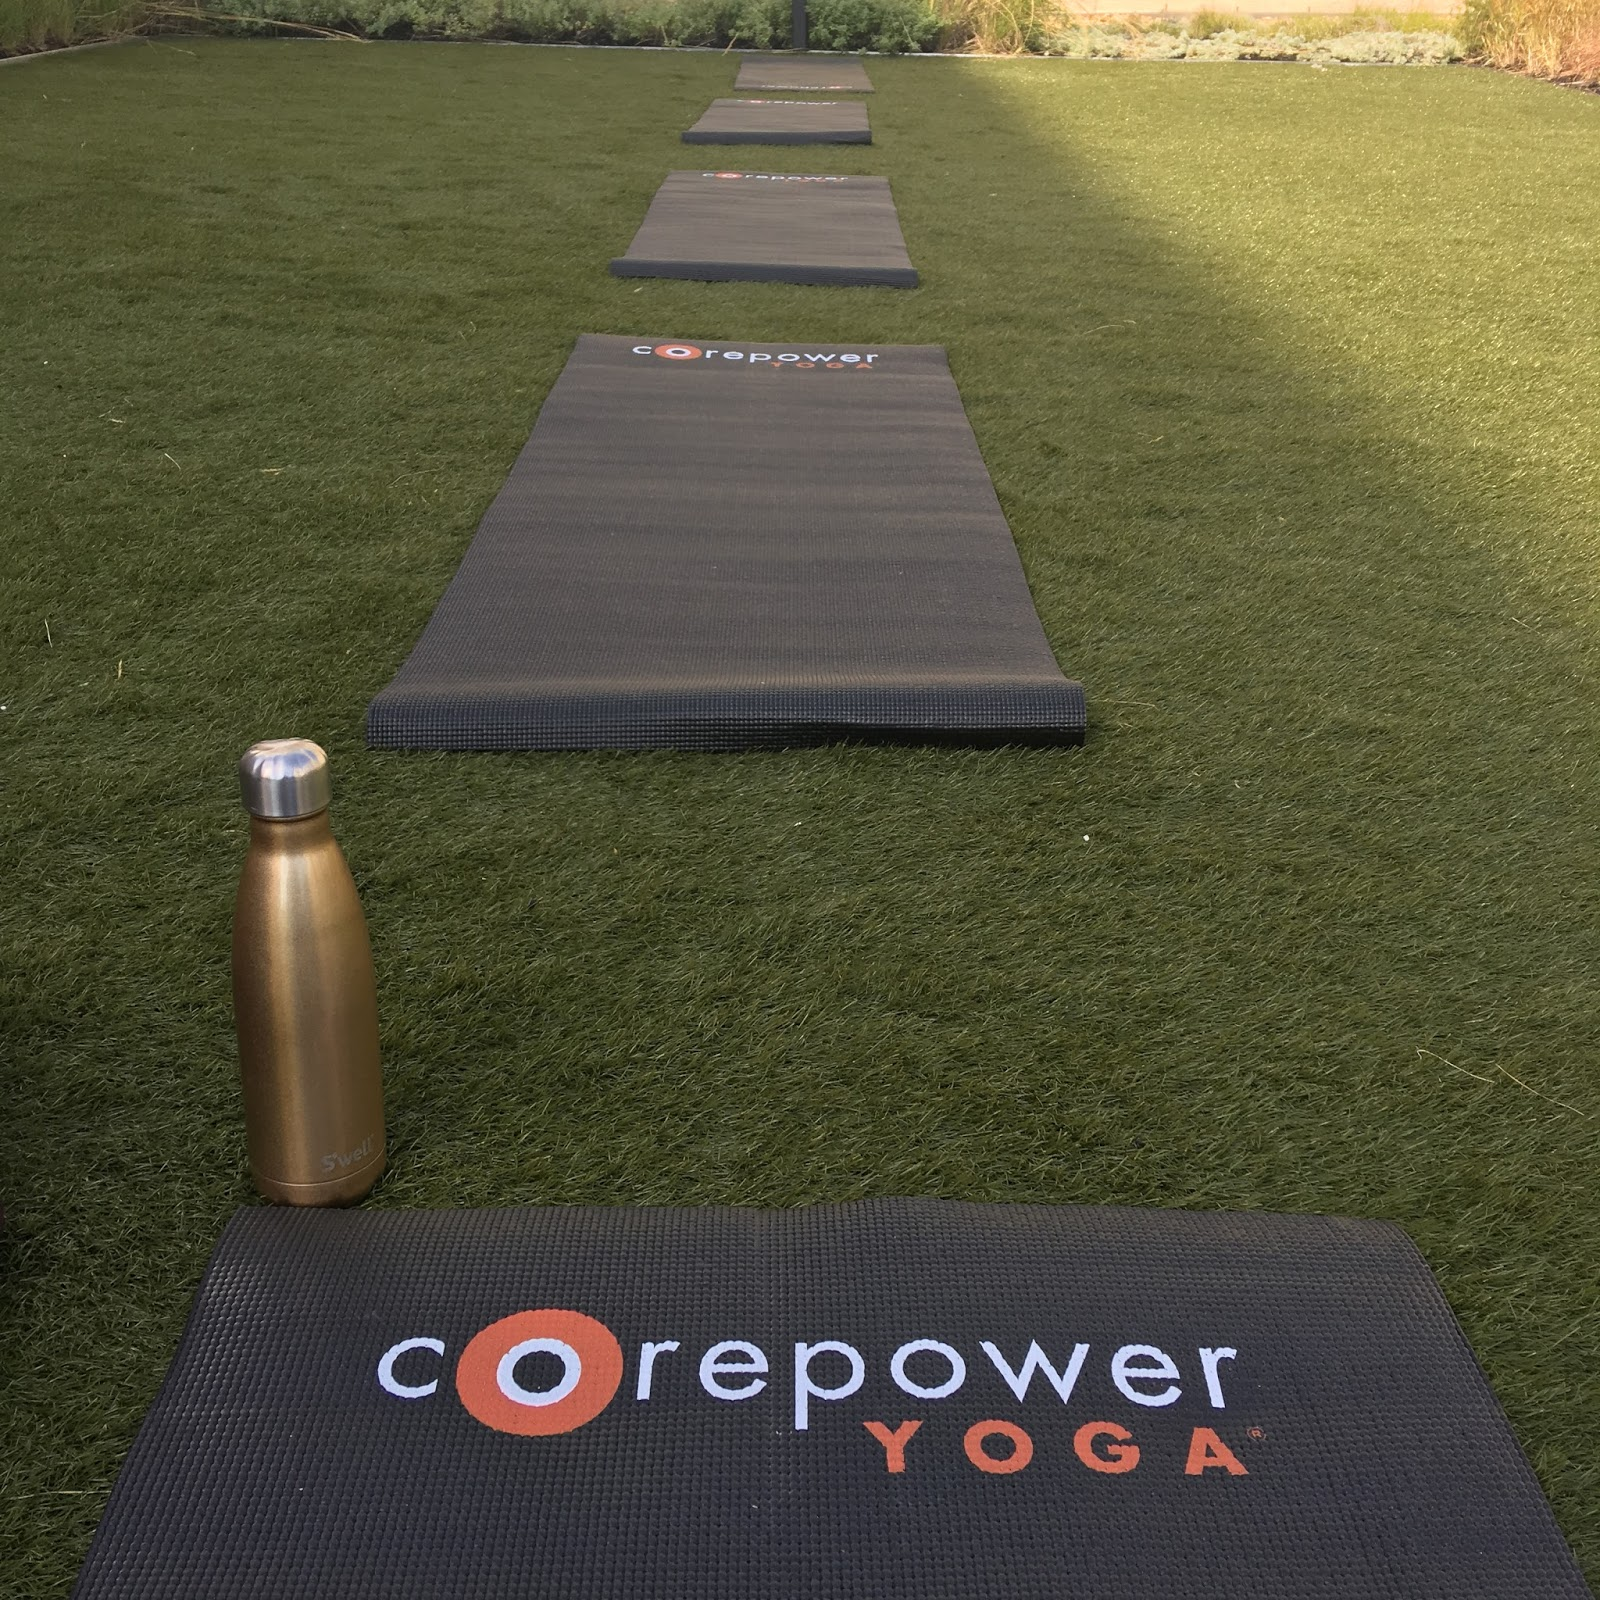 Core Power Yoga Ink Block